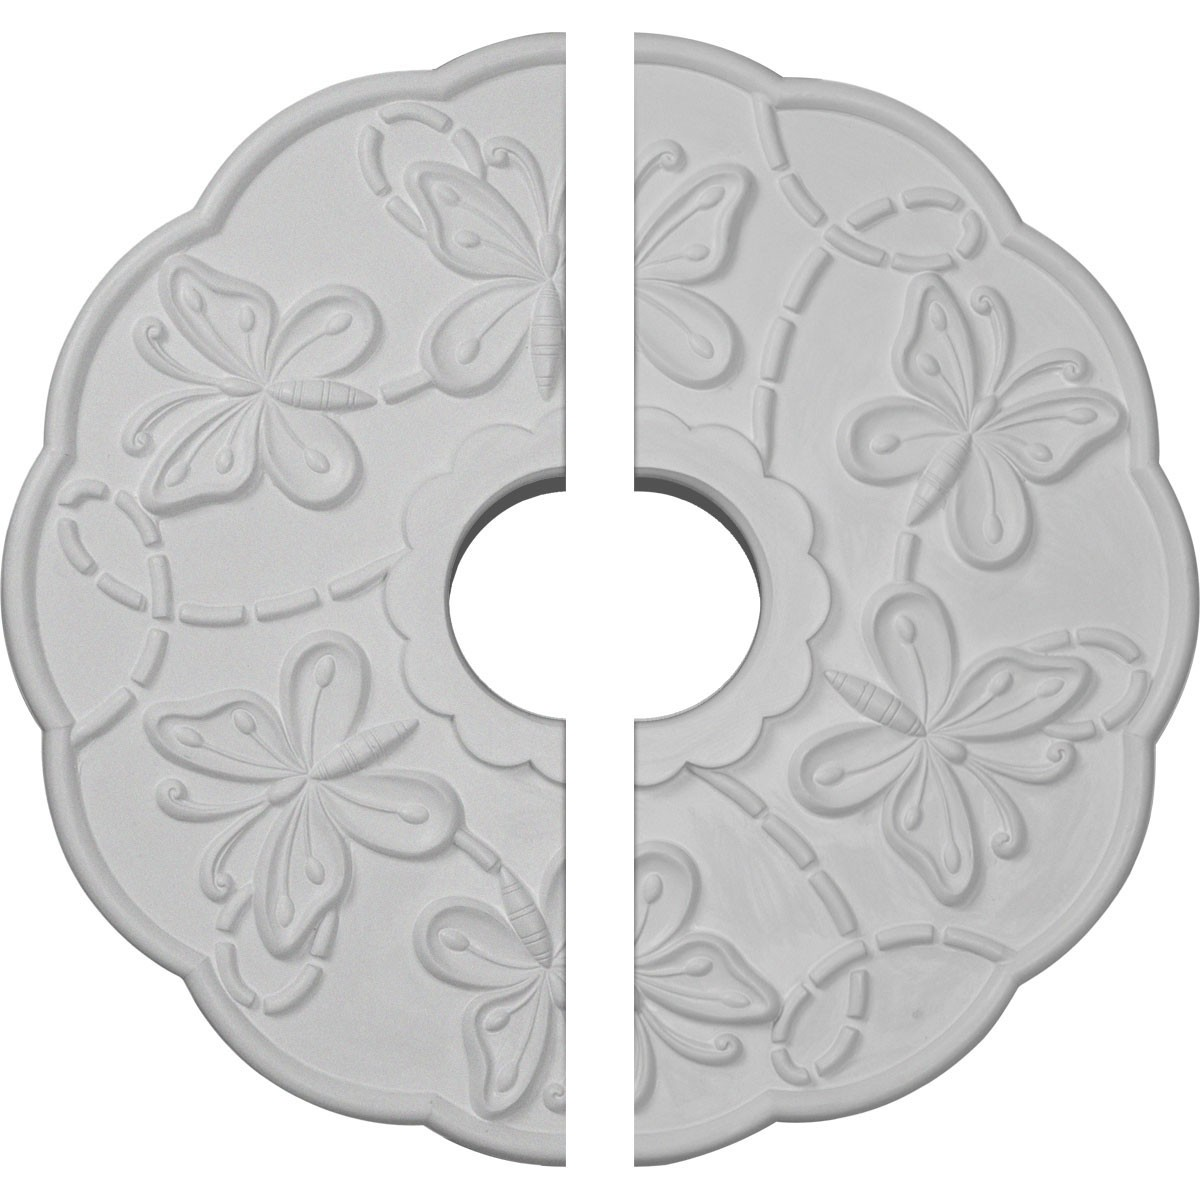 """EM-CM17TS2 - 17 7/8""""OD x 3 7/8""""ID x 1""""P Terrones Butterfly Ceiling Medallion, Two Piece (Fits Canopies up to 3 7/8"""")"""